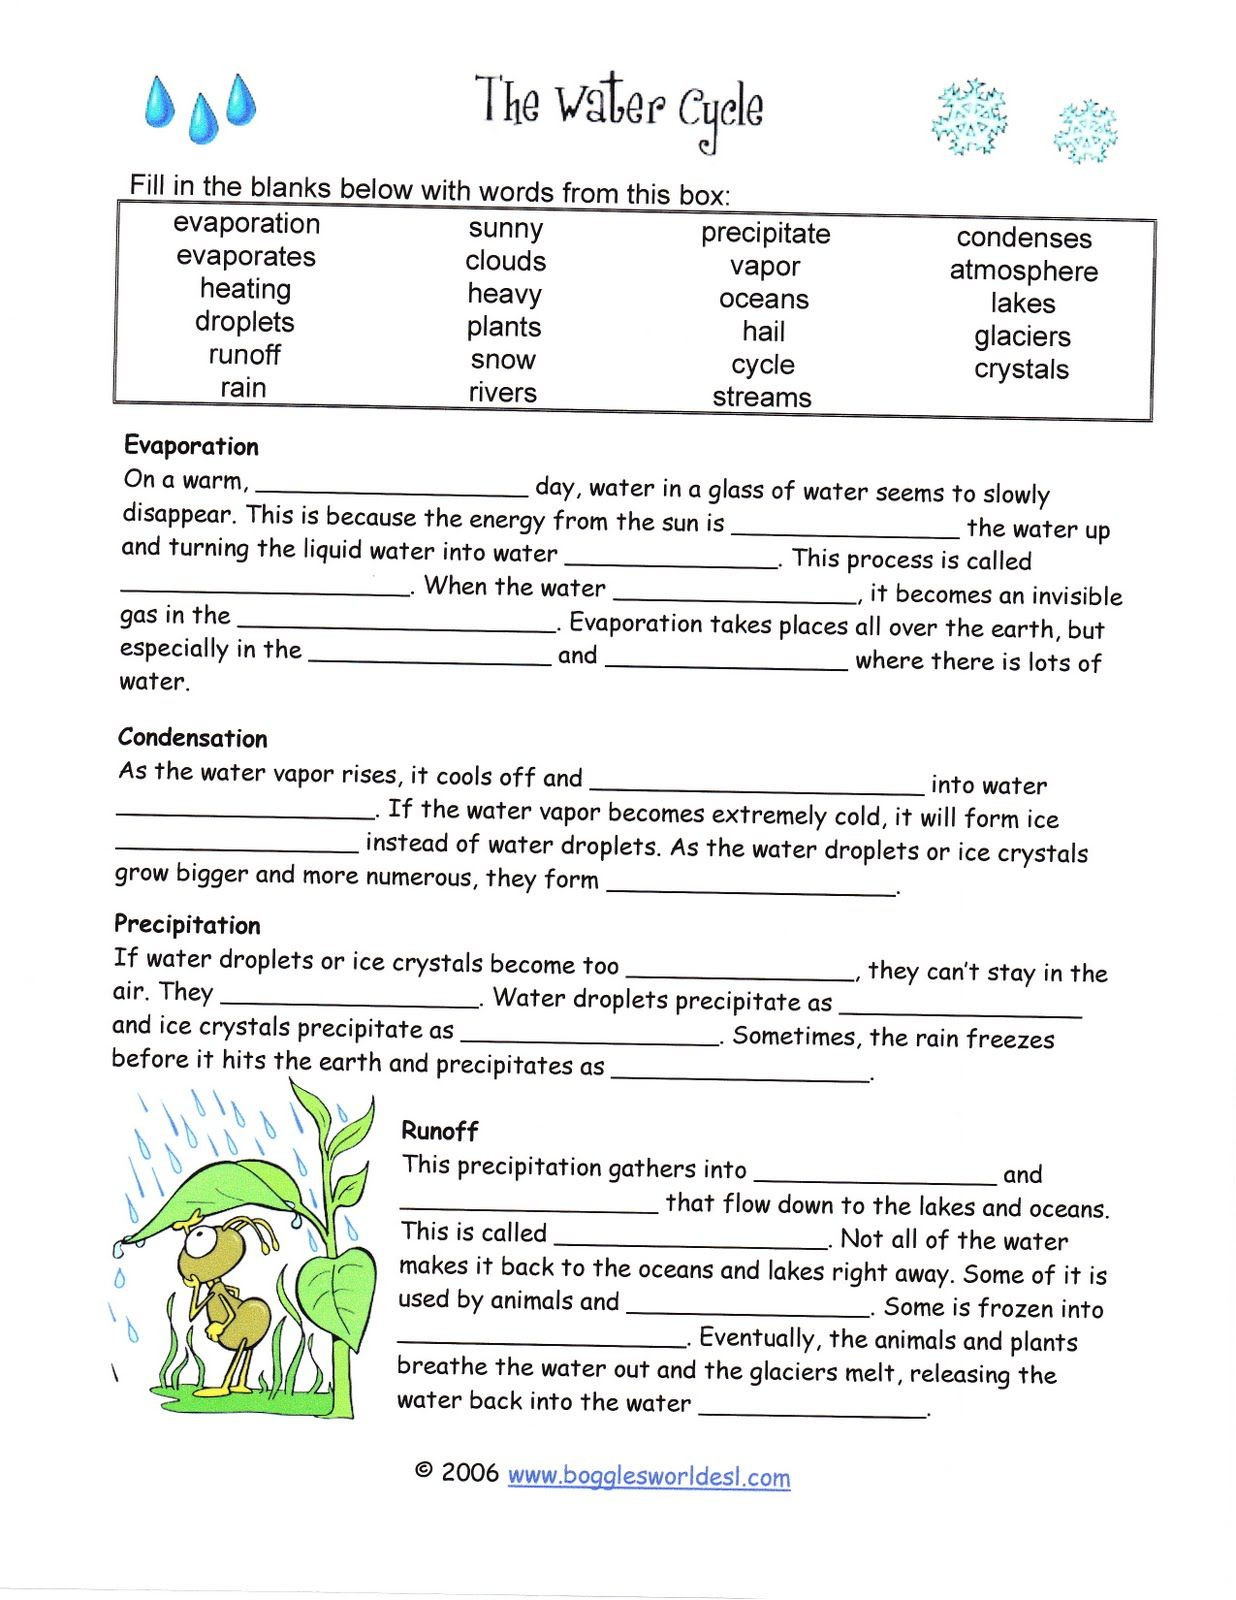 Water Cycle Worksheets 2nd Grade Water Cycle Worksheets 2nd Grade